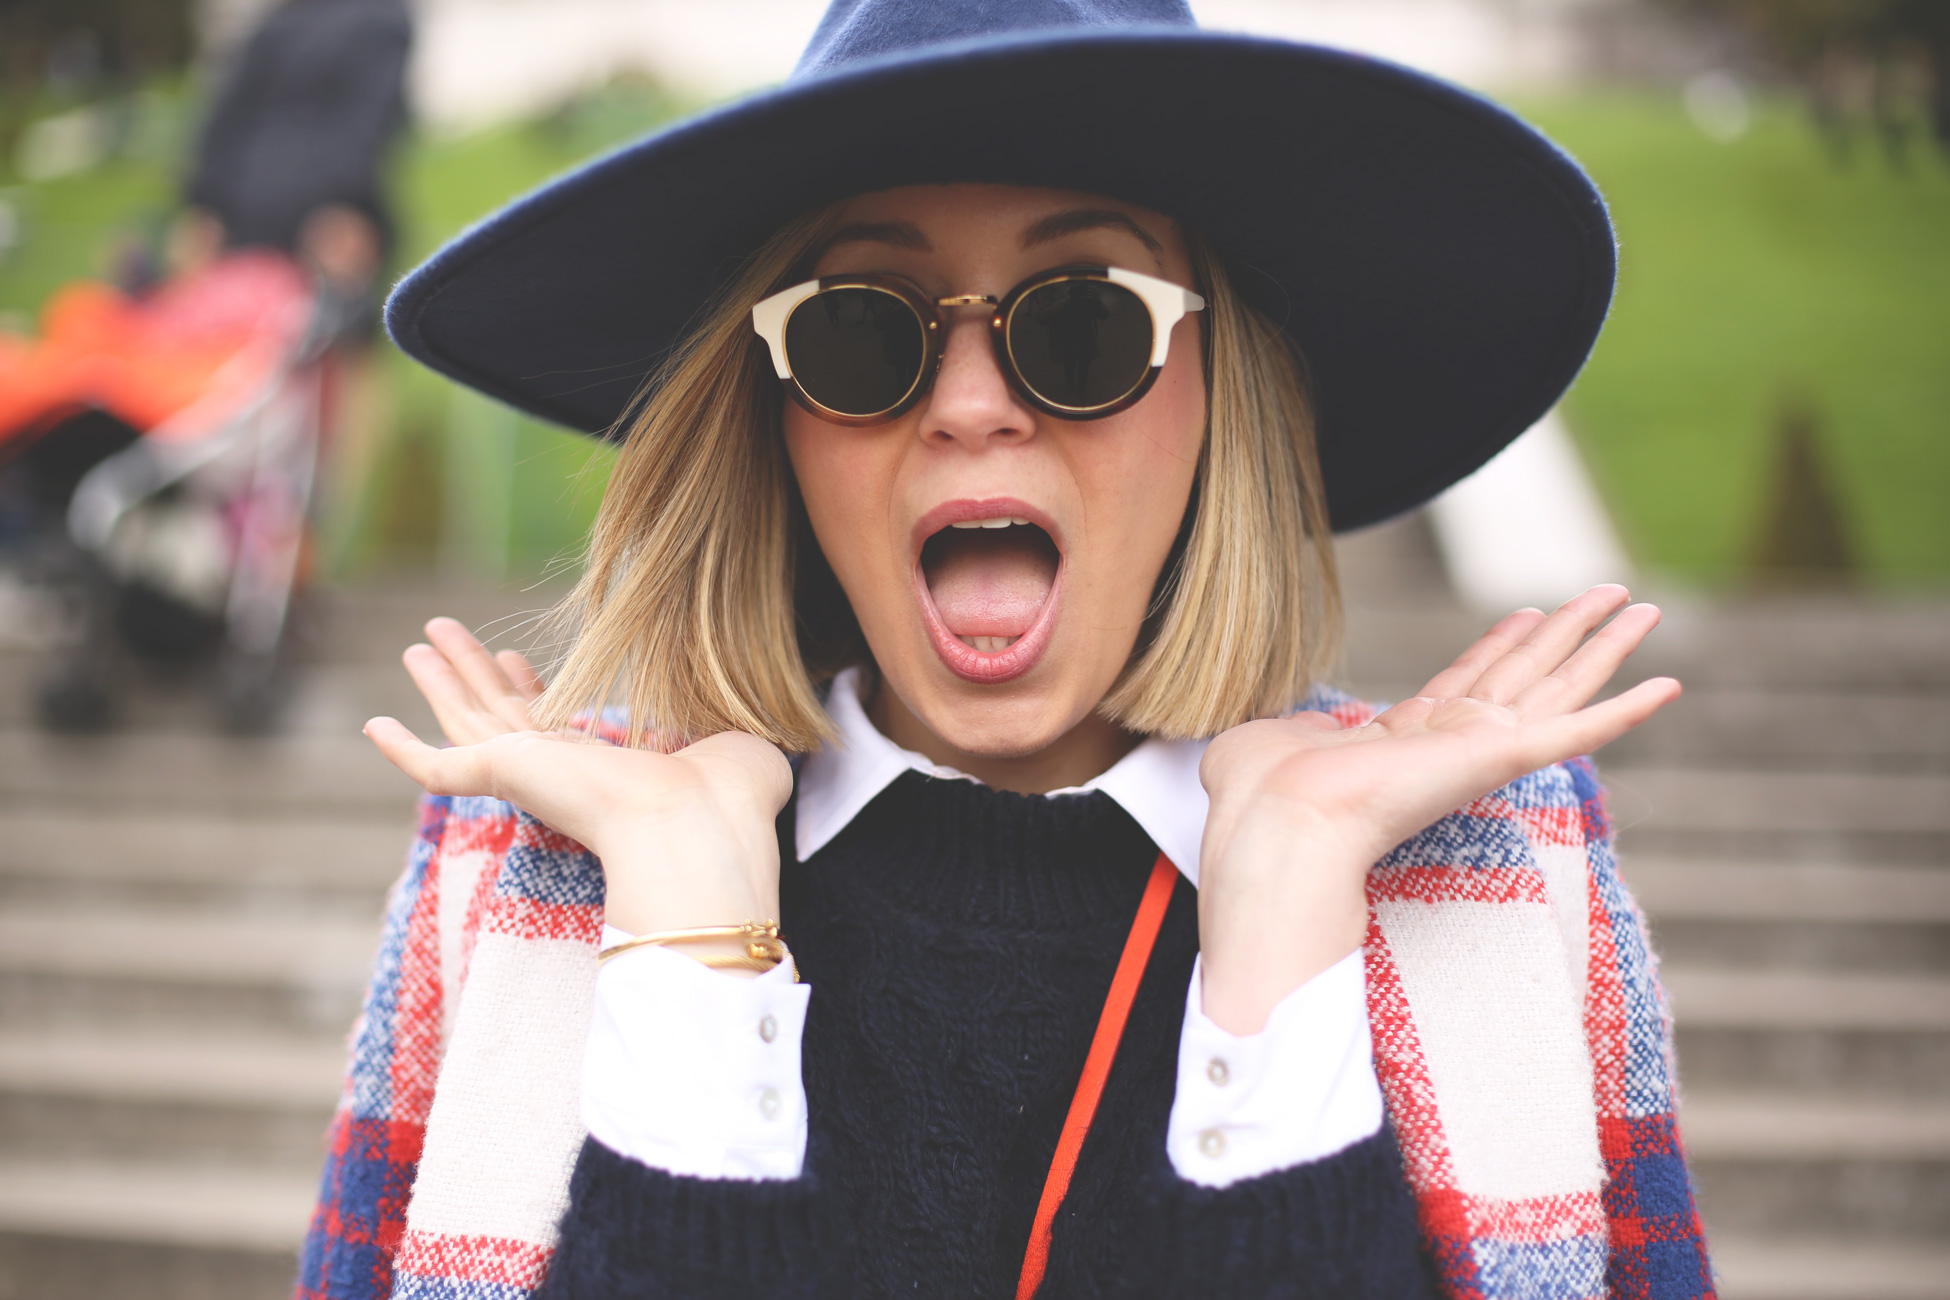 coat, blonde, fashion blog, blue hat, look zara, abrigo Zara, gafas de sol retro, white sneakers, street style, pfw, paris, blue sweater, trend,